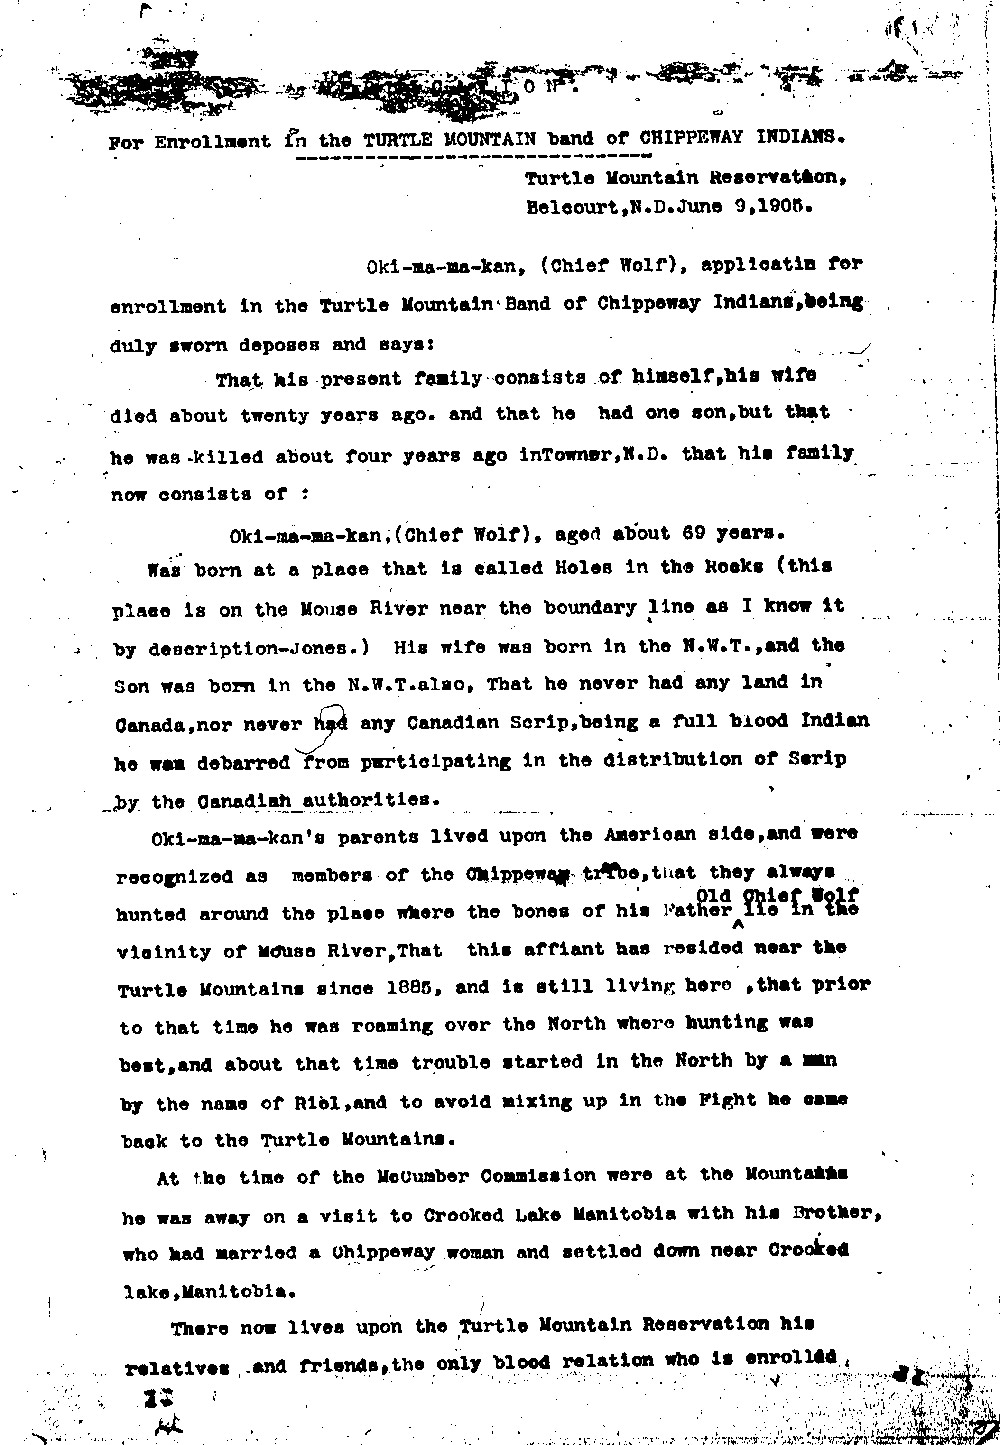 The McCumber Agreement and allotment broke up the families of the Turtle Mountain Chippewas. Many people had no place they could call home. One elderly man, Oki-ma-ma-kan (also called Chief Wolf) applied to become a member of the Turtle Mountain Chippewa. He had been born in the United States, but had married a Canadian Chippewa woman and had lived a few years in Canada. After his wife's death and the death of their only son, he had no family to live with unless he went to the reservation. <br /><br />We don't know the outcome of Oki-ma-ma-kan's application for enrollment, but his application tells us  more about how the establishment of the Turtle Mountain reservation affected individual Chippewas. The strict rules about enrollment and the small land base made life very difficult for the elderly, the poor, and others who needed to live near their family members.